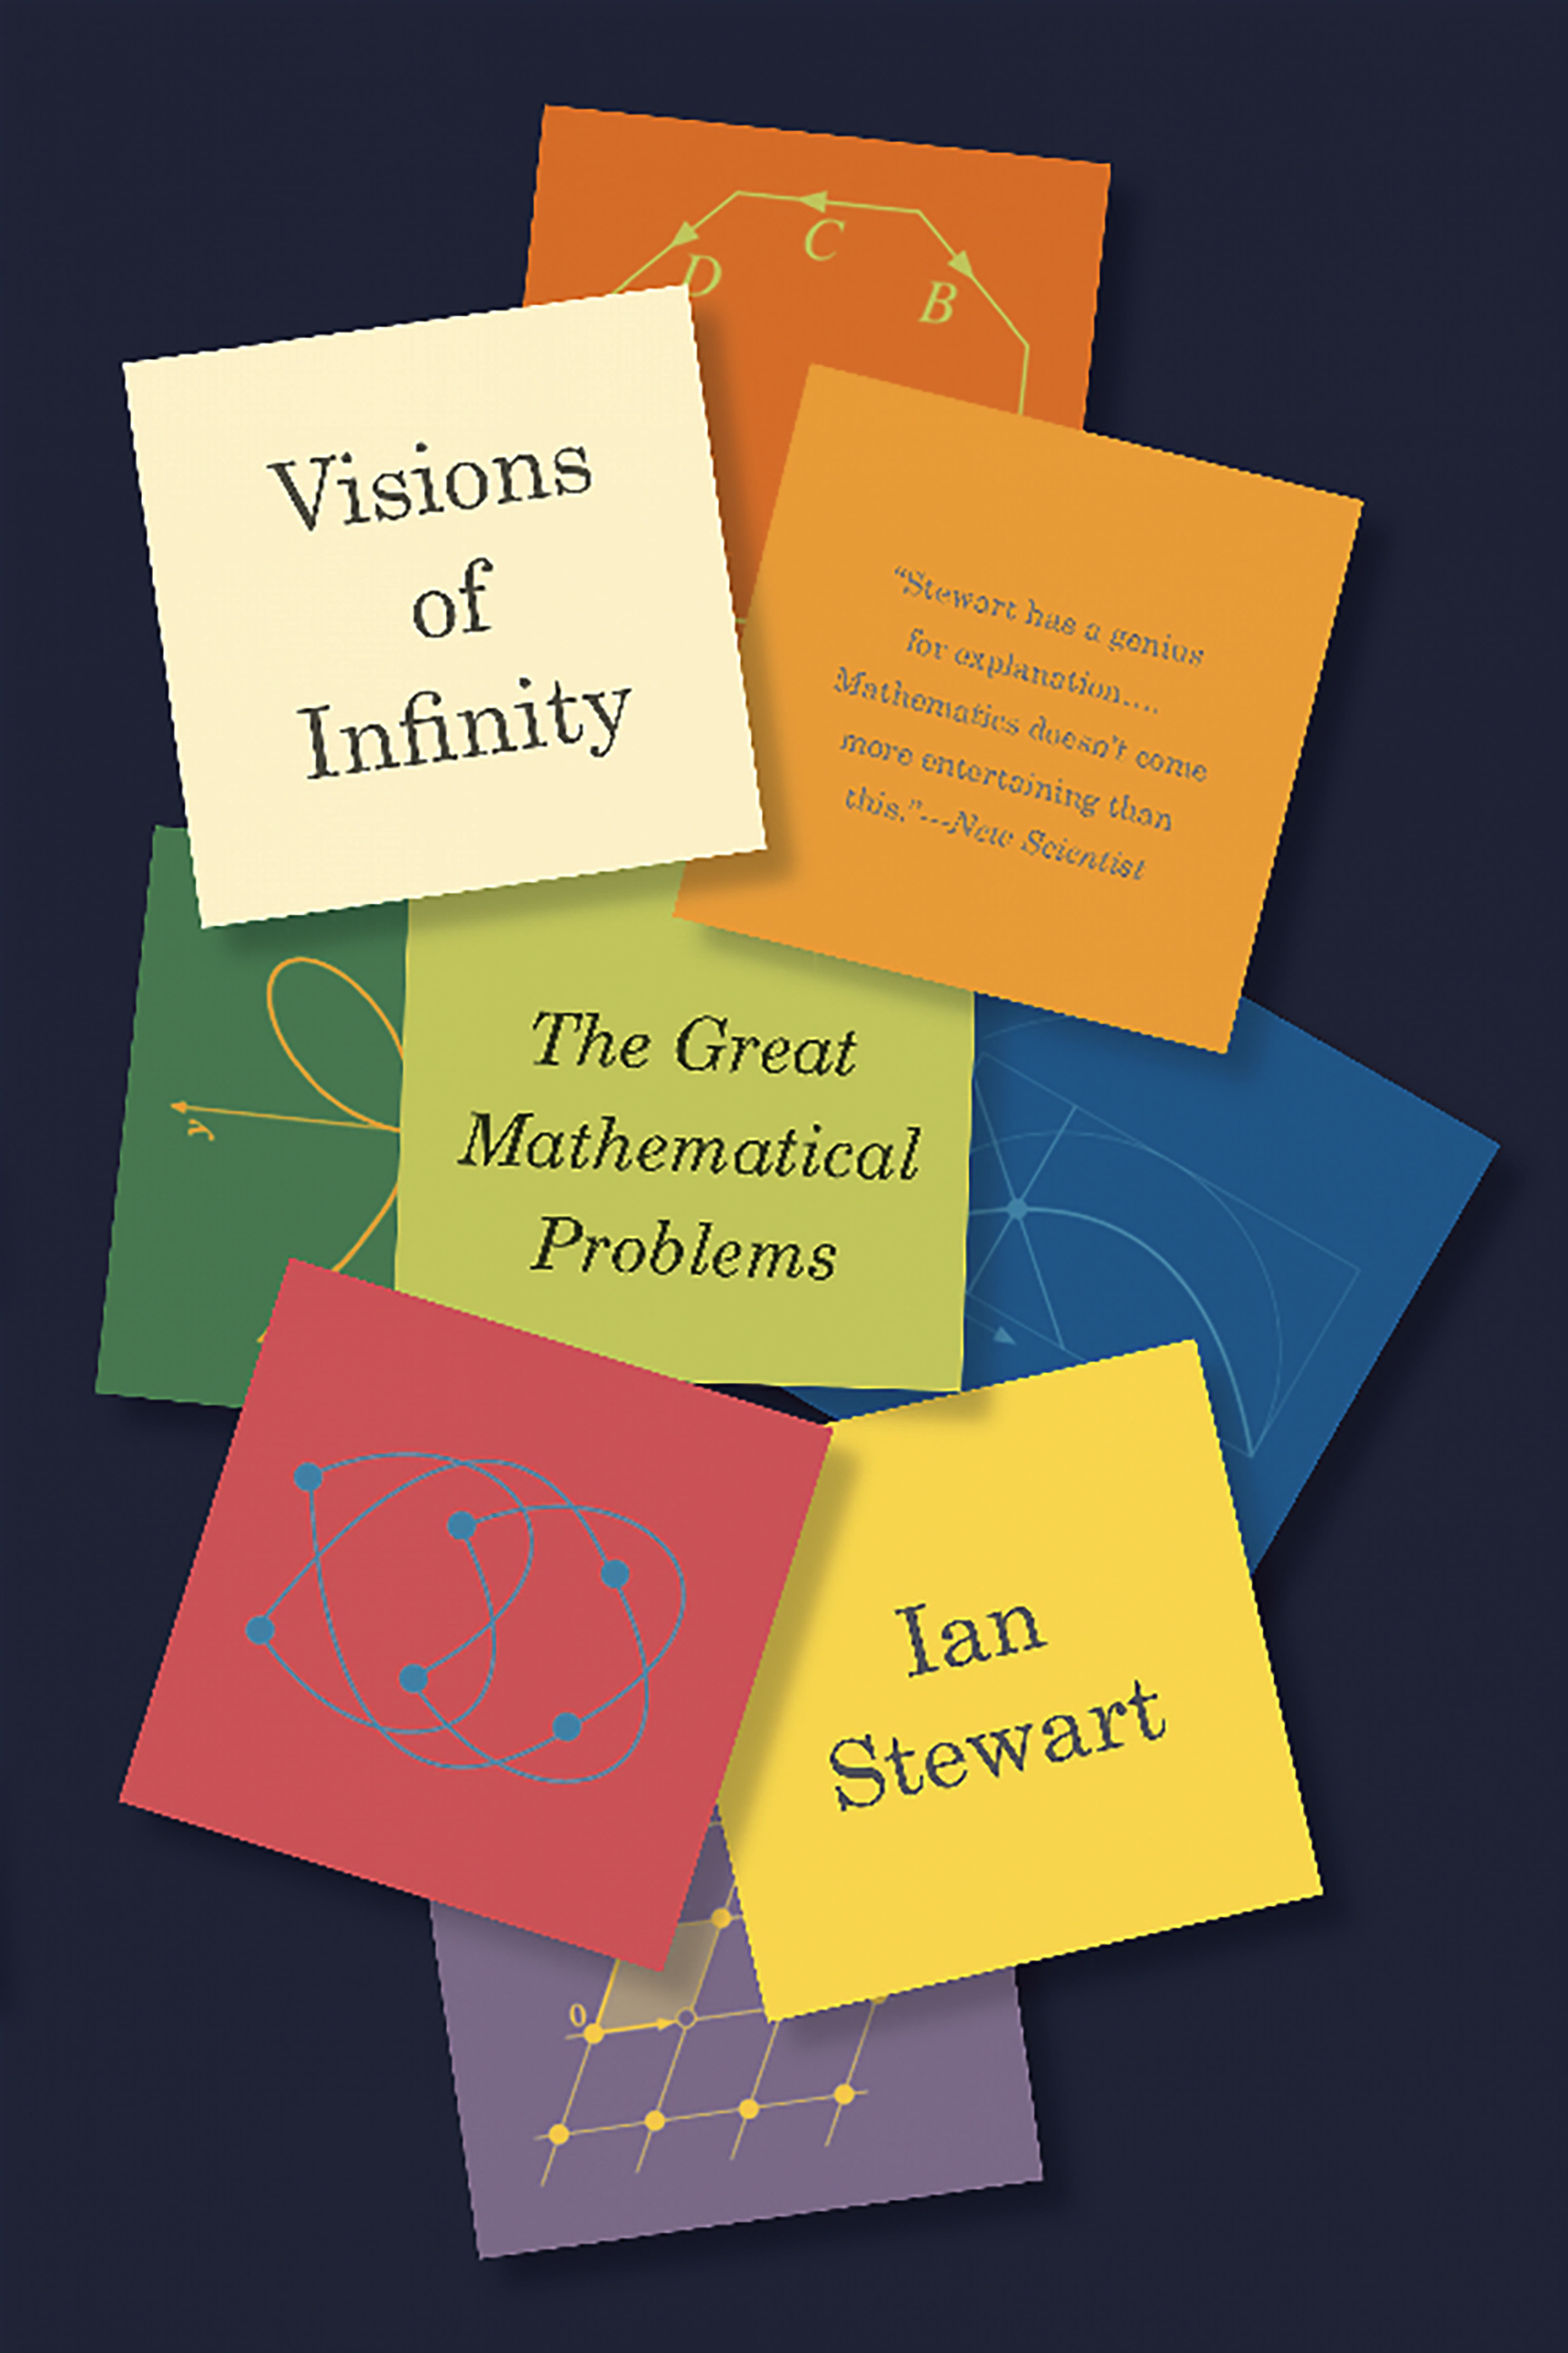 an analysis of the concept of infinity in the mathematical context There has been little research on the mathematical concepts of infinity and limit using discourse analysis as a methodology discourse analysis holds promise of answering.